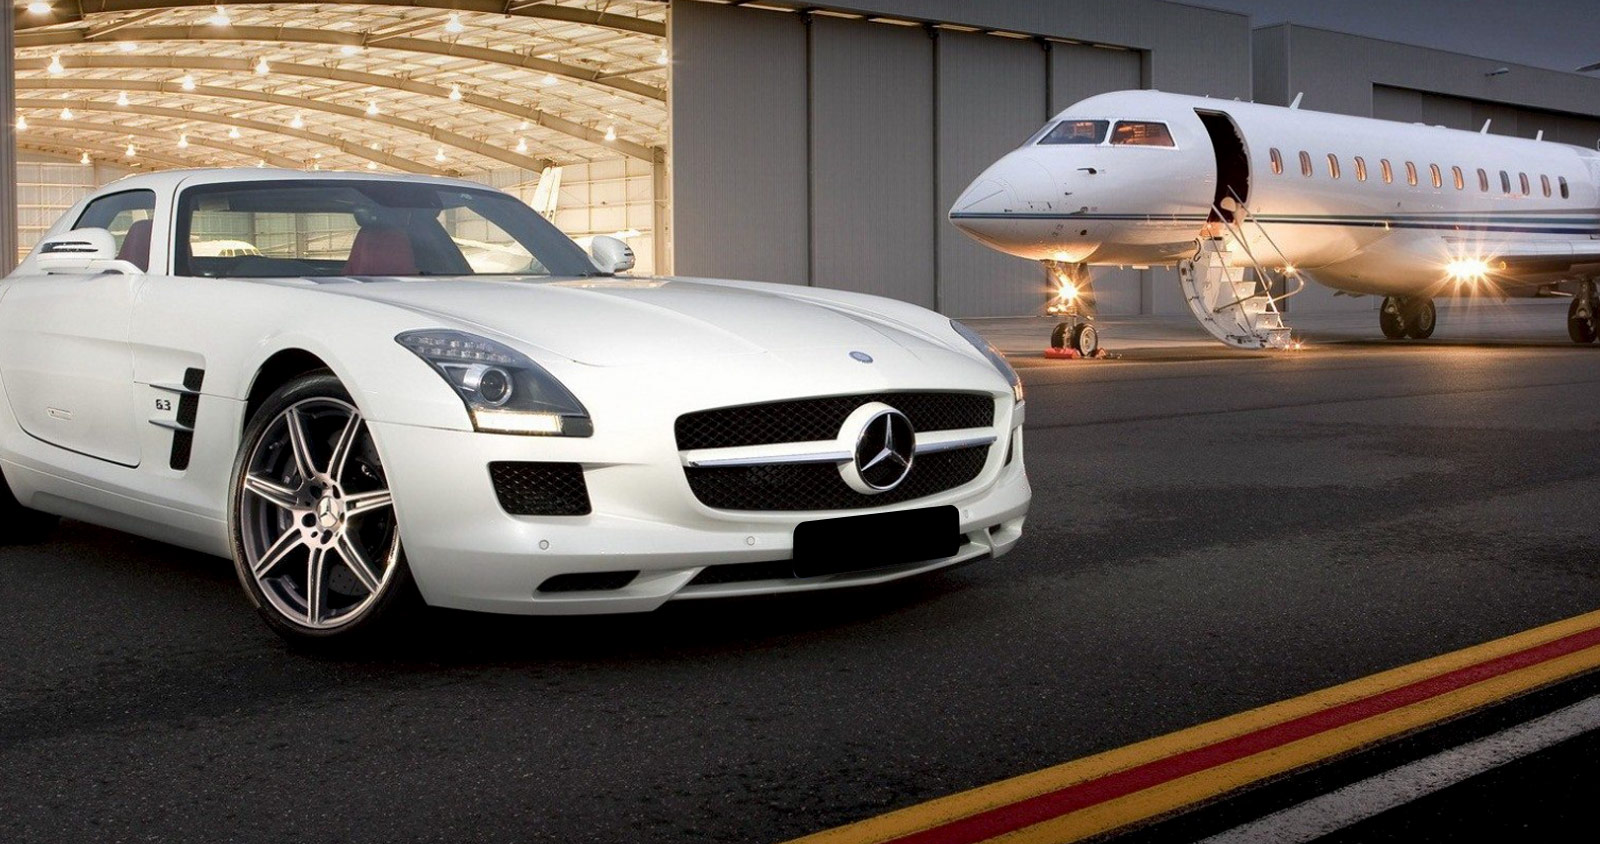 VIP and Luxury Travel Services